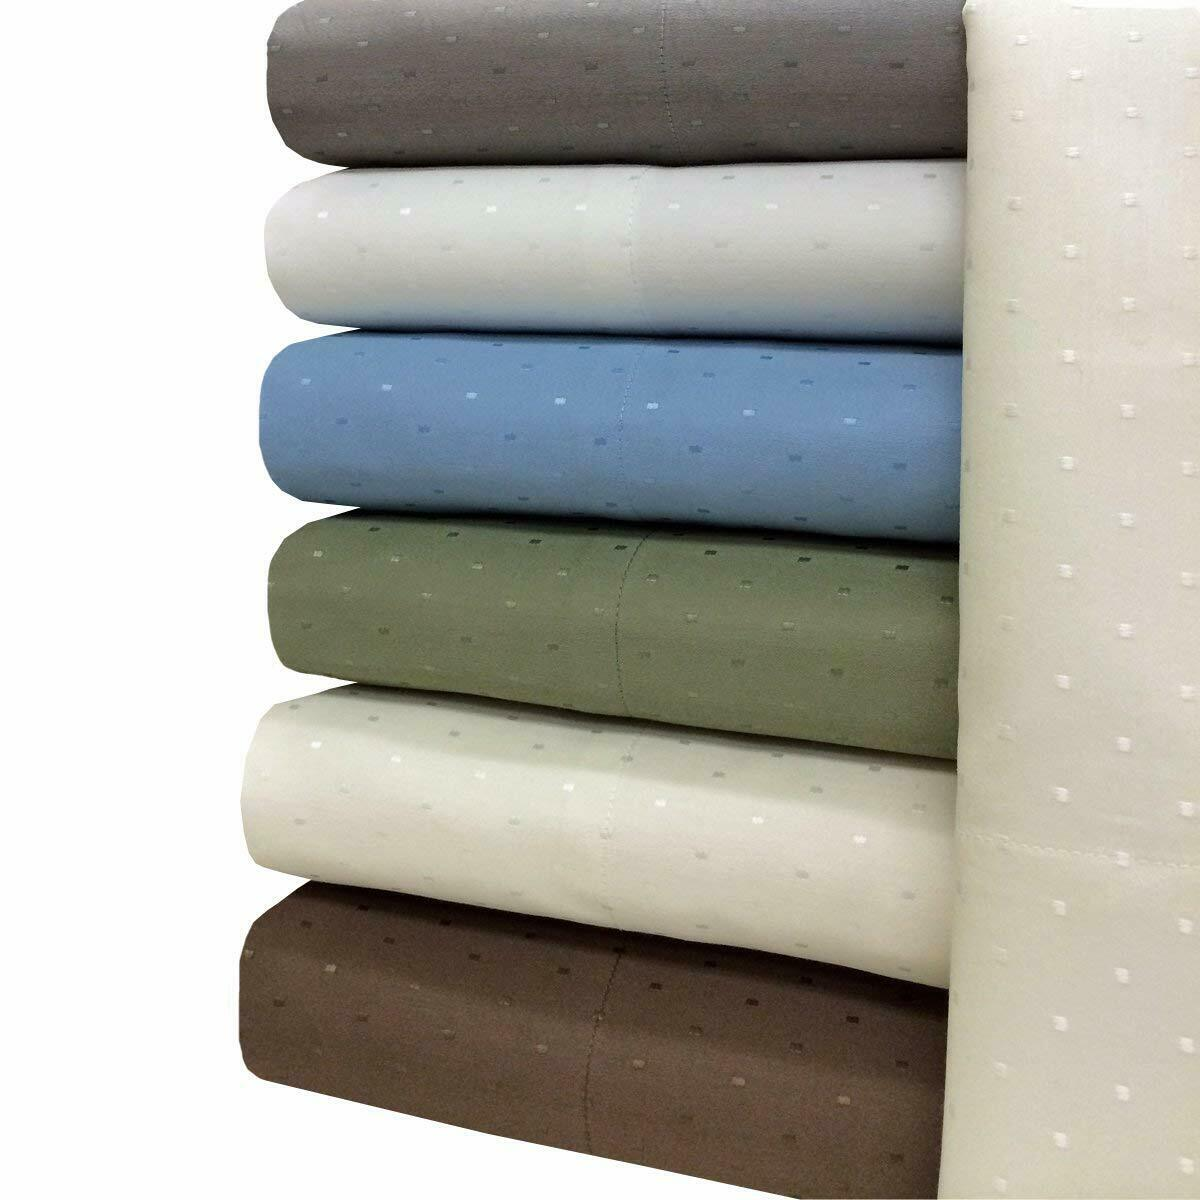 Luxury Cotton Blend Wrinkle Free Woven Dots Sheets 600 Thread Count Sheet Set